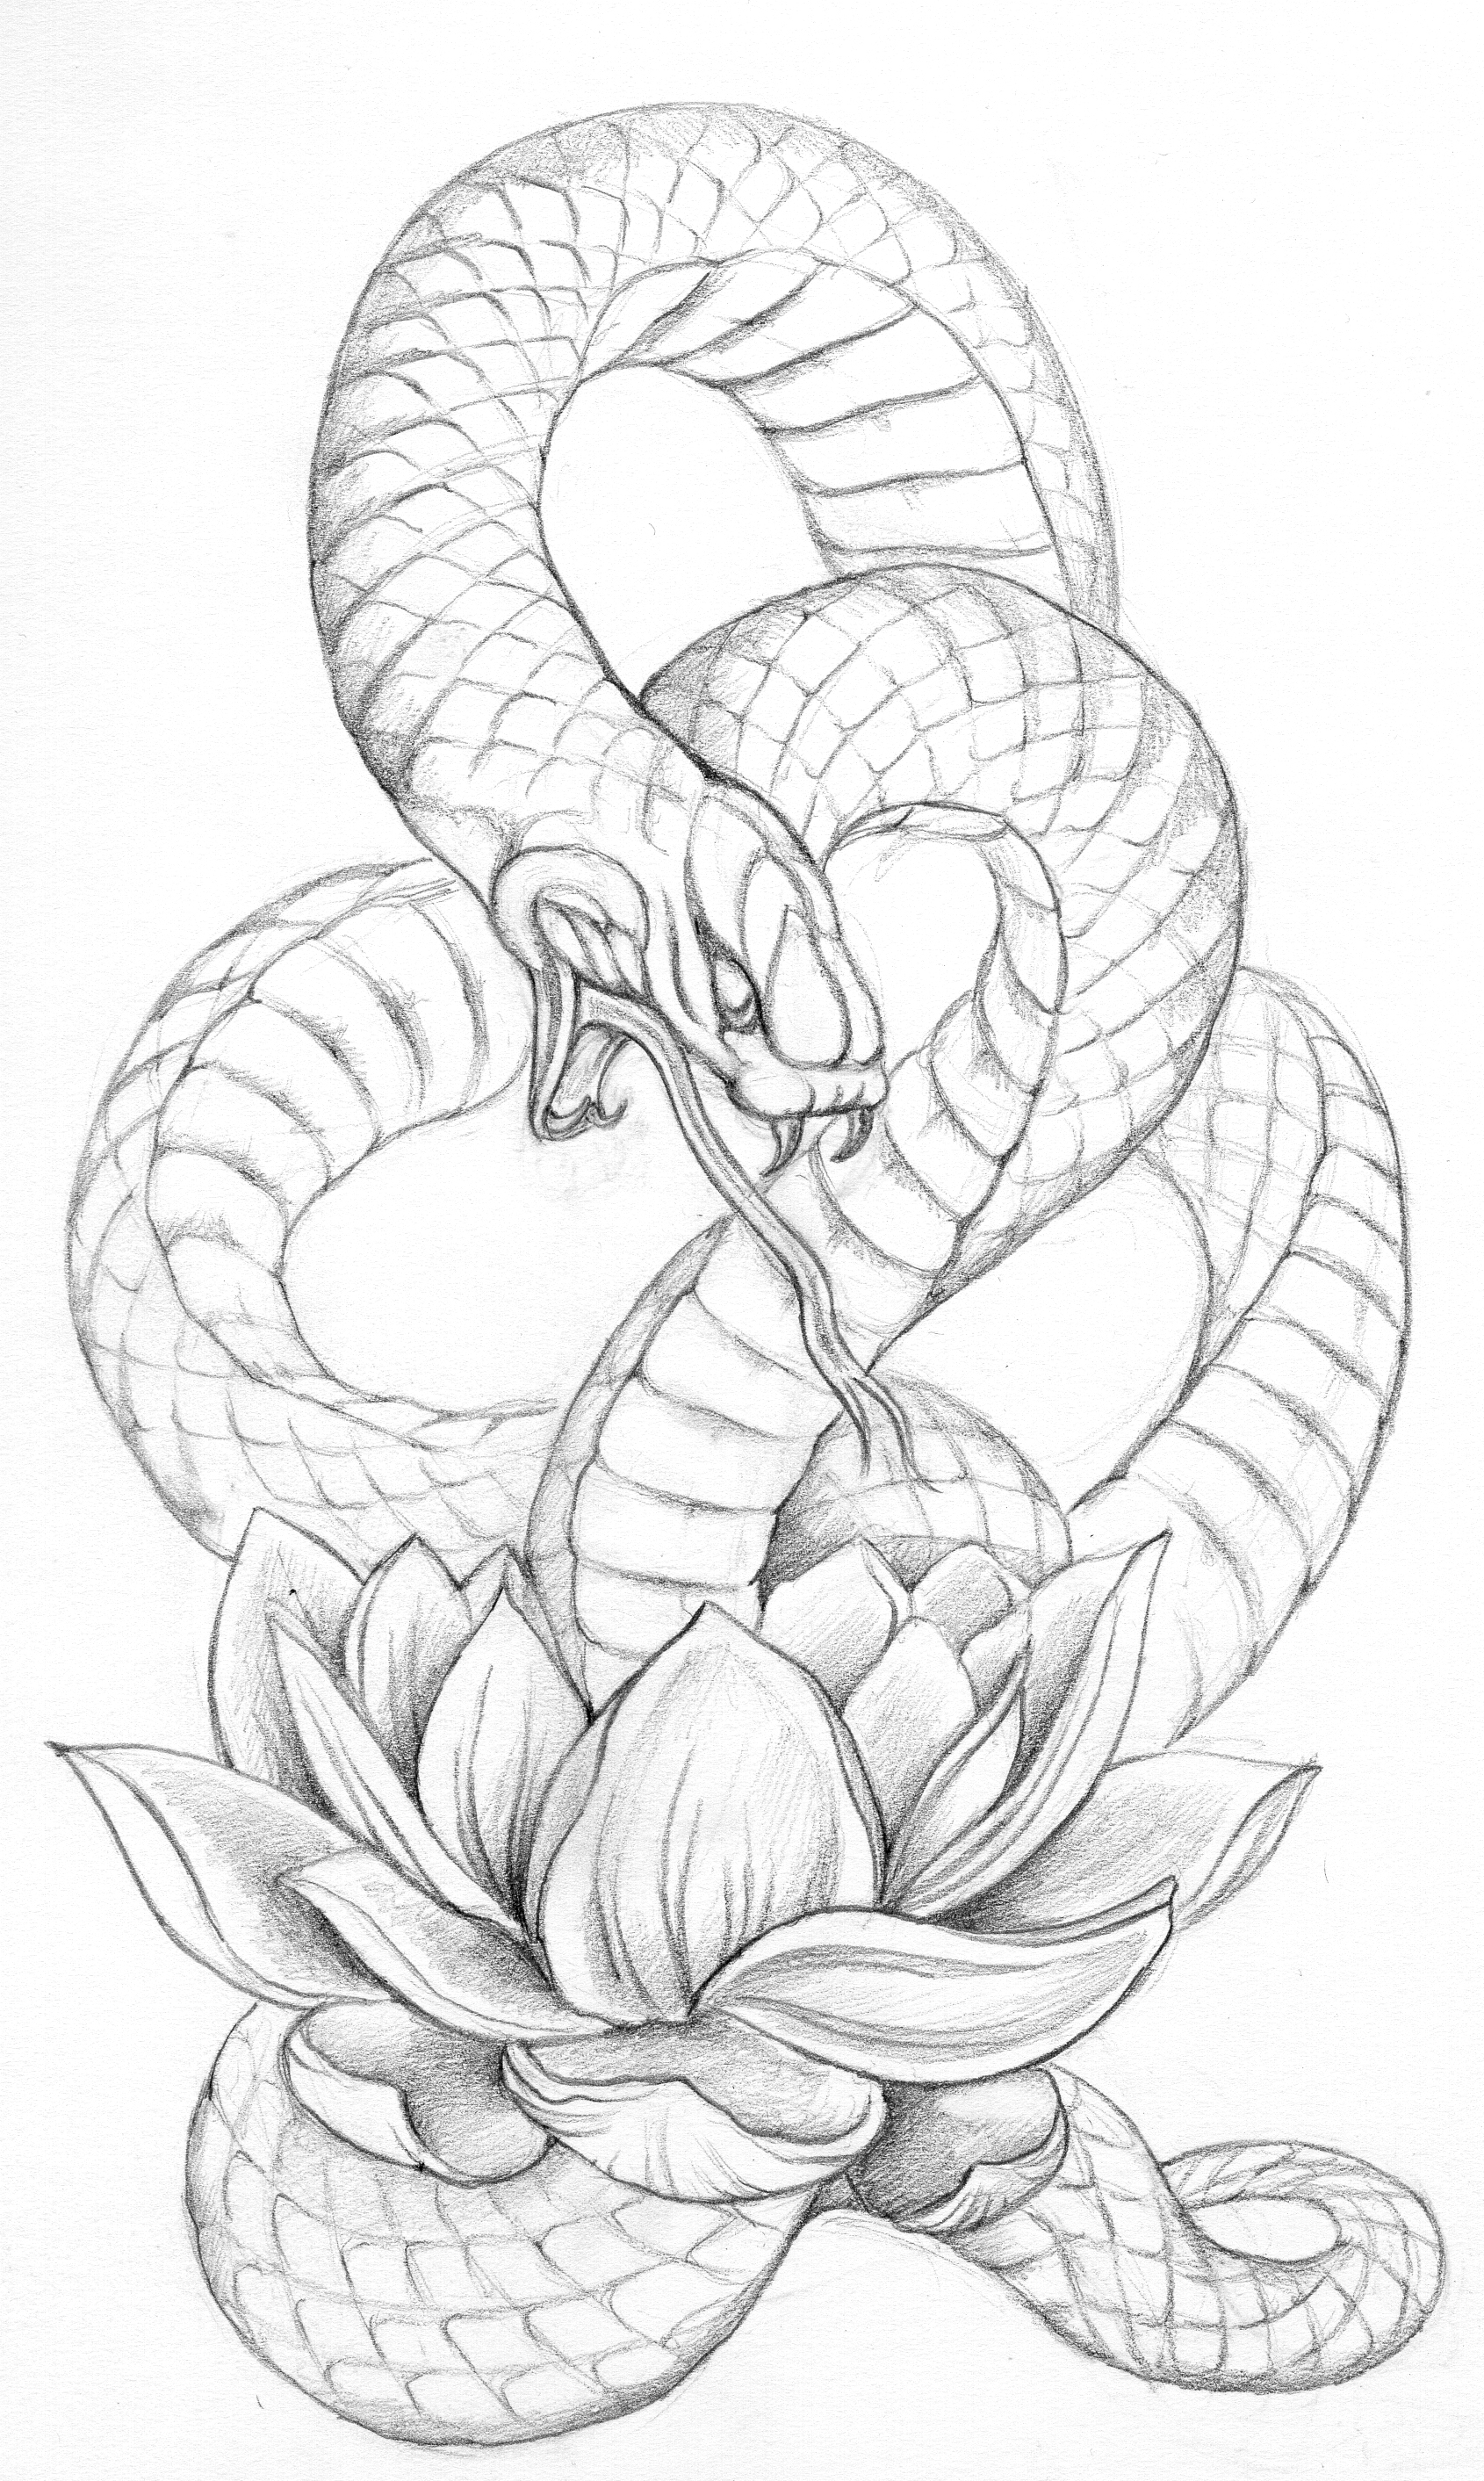 1690x2825 Snake Sketch Turn This Into A Tattoo By Having The Tail Wrap